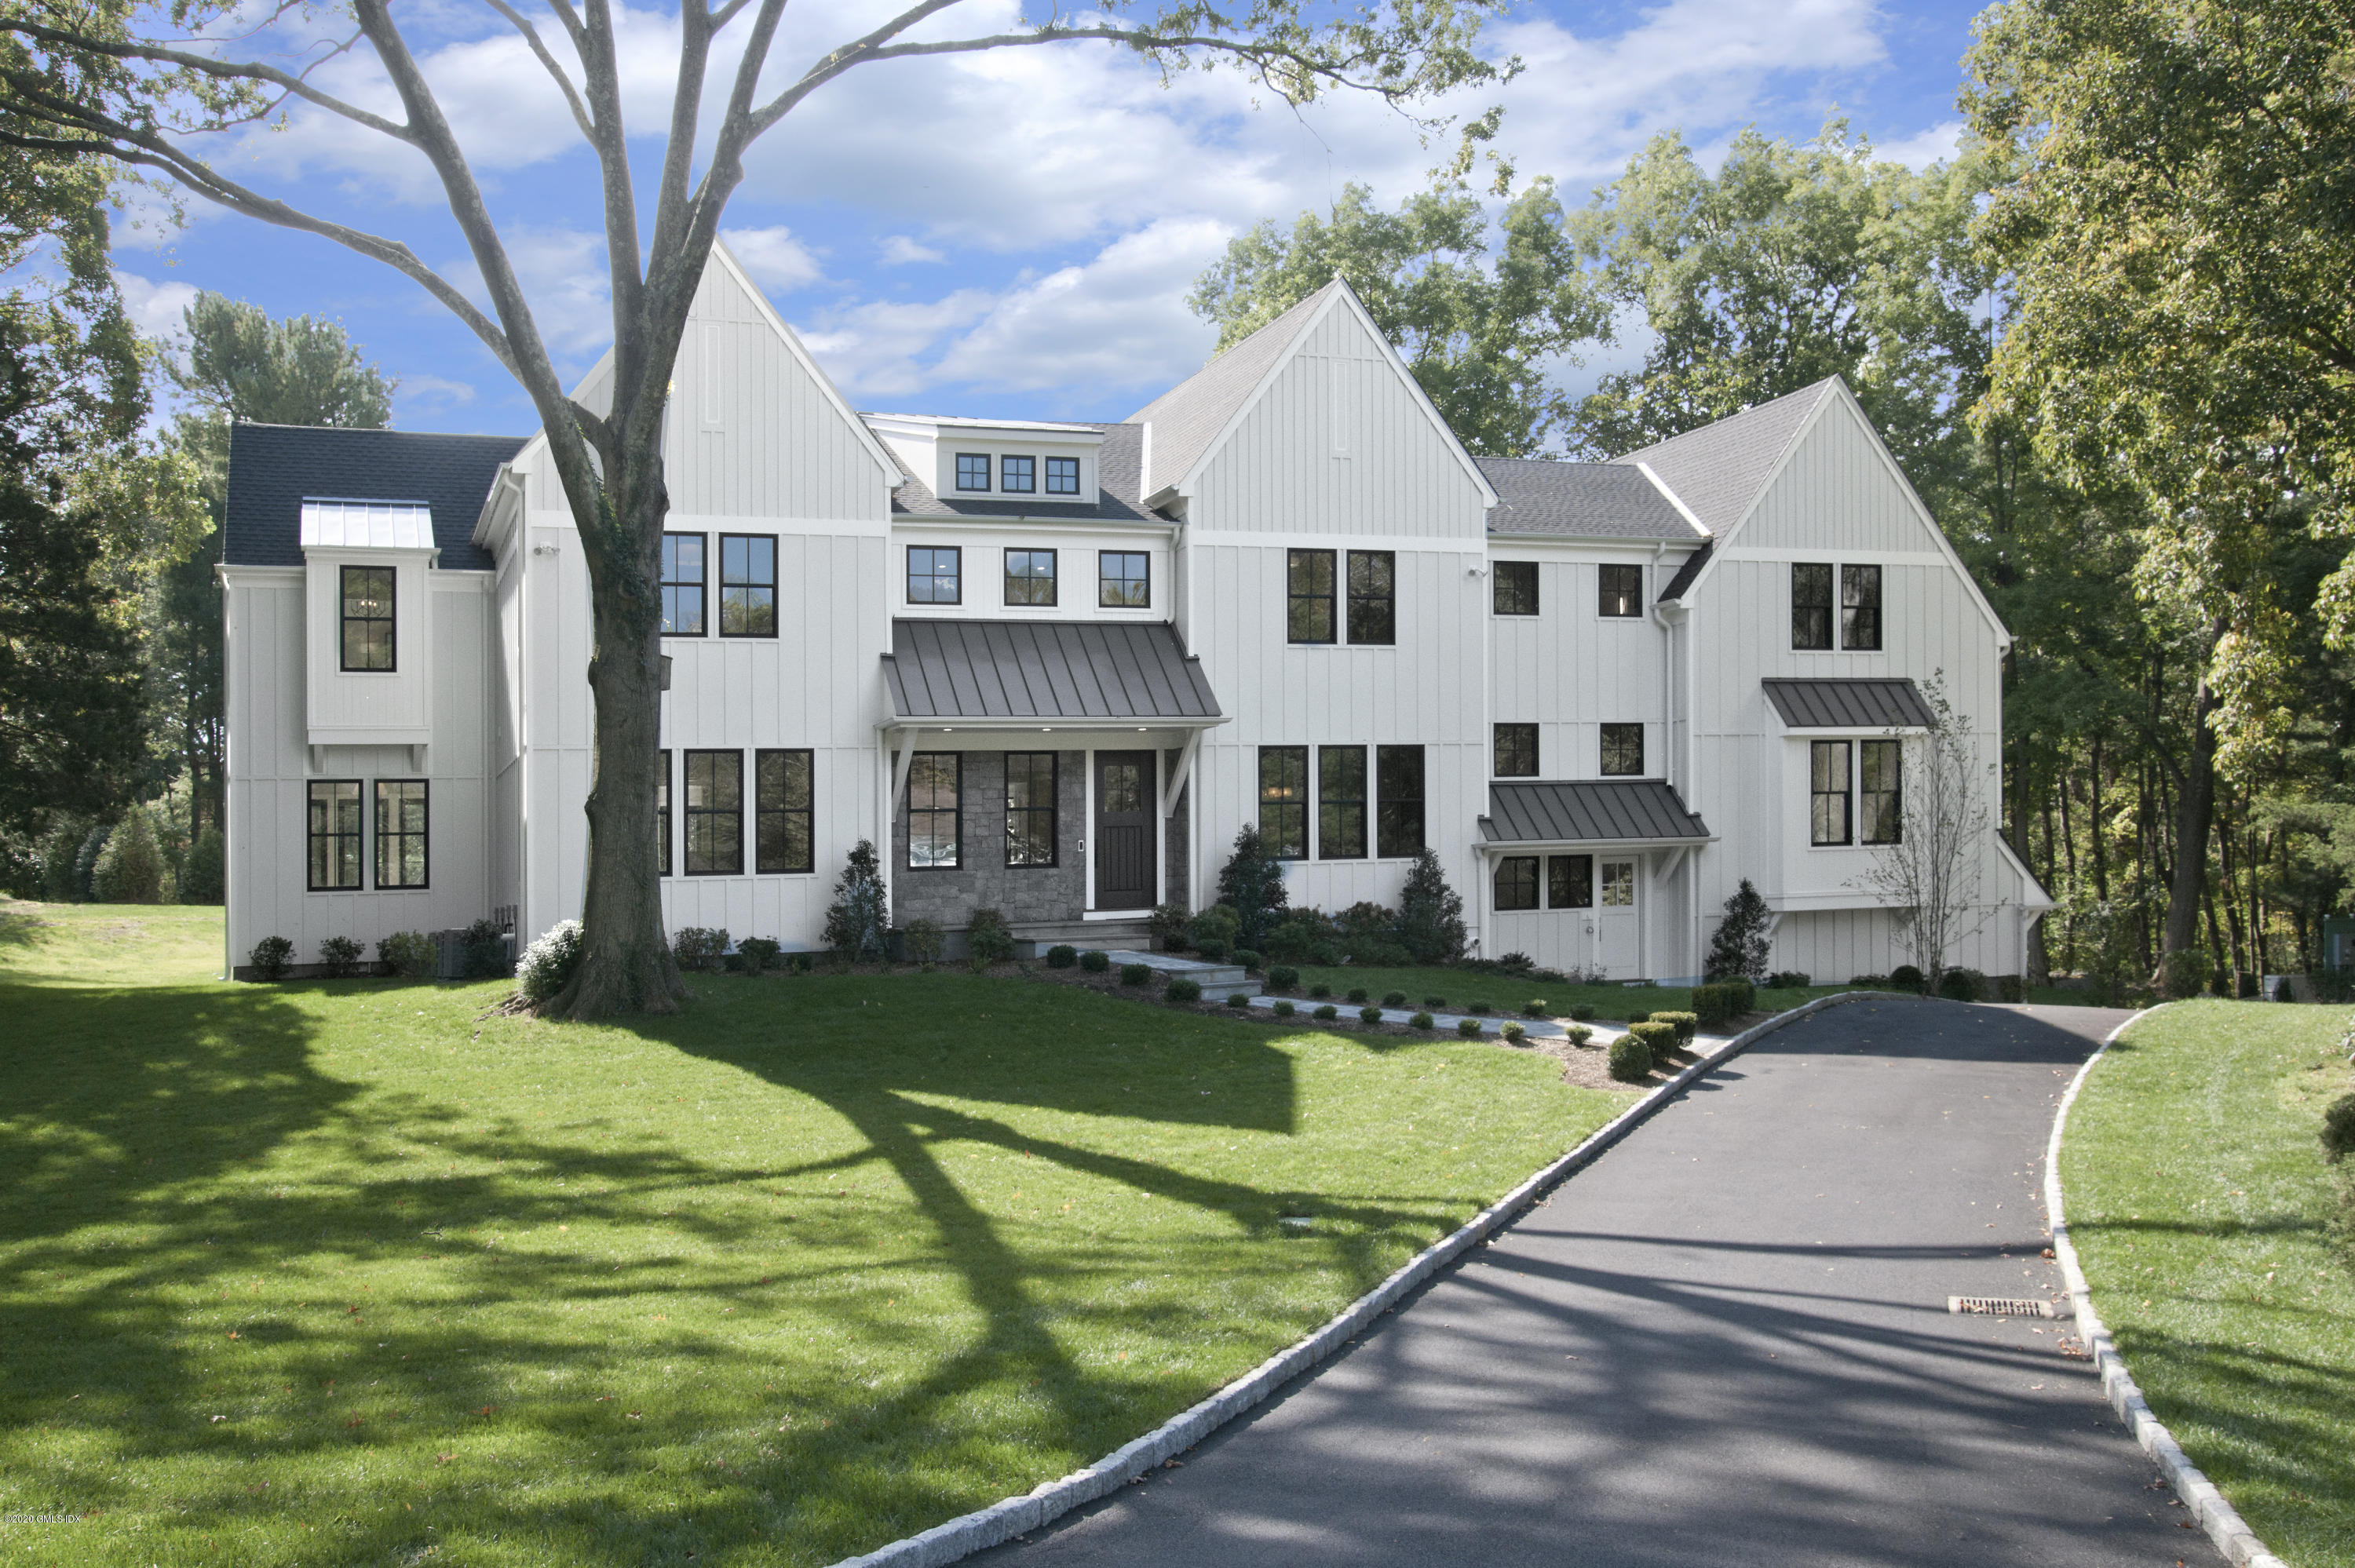 22 Angus Lane, Greenwich, Connecticut 06831, 6 Bedrooms Bedrooms, ,6 BathroomsBathrooms,Single family,For sale,Angus,108584